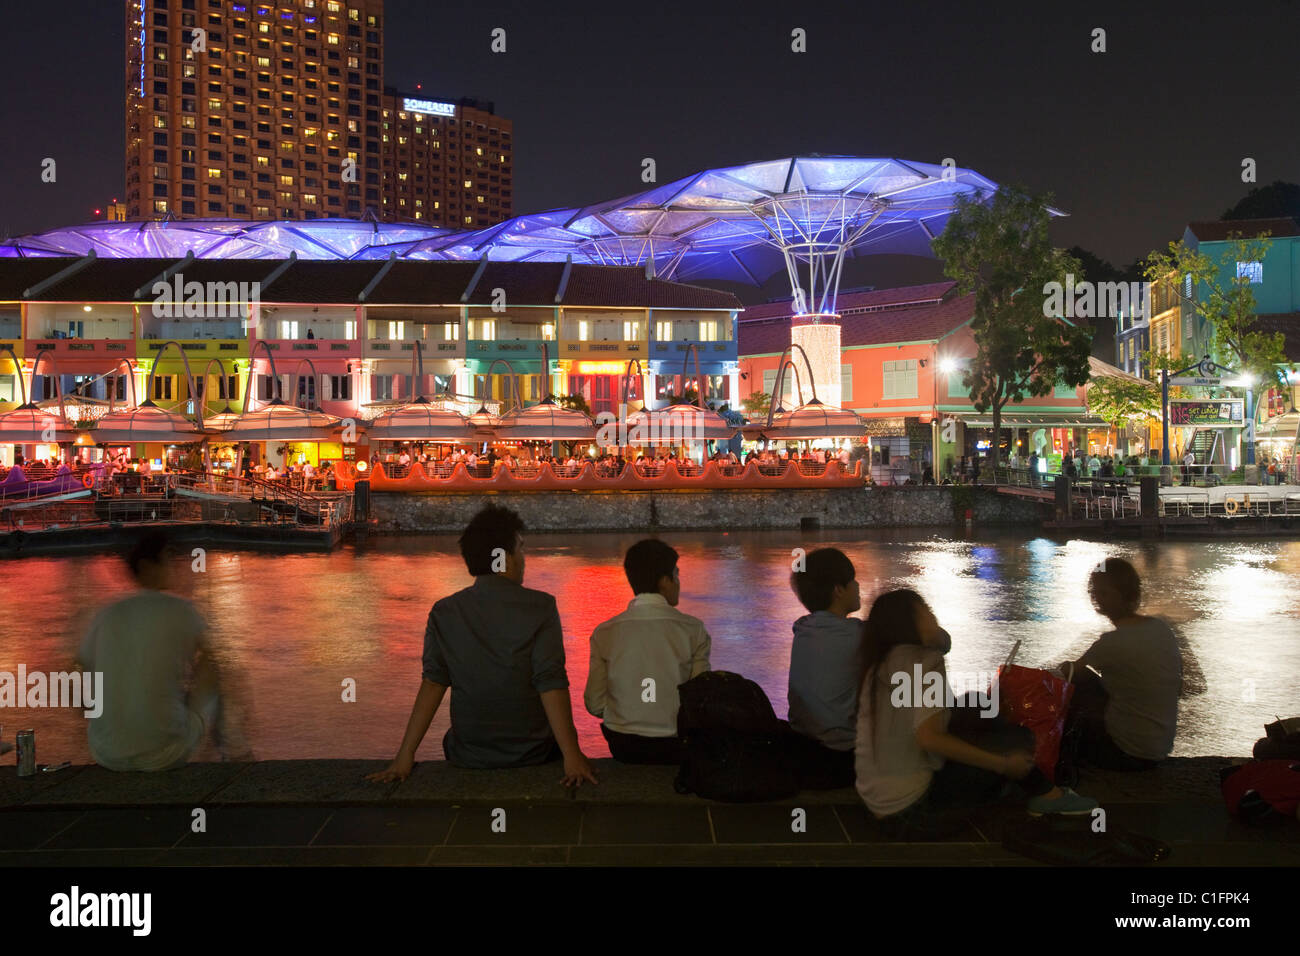 People relaxing at the riverside district of Clarke Quay, Singapore - Stock Image